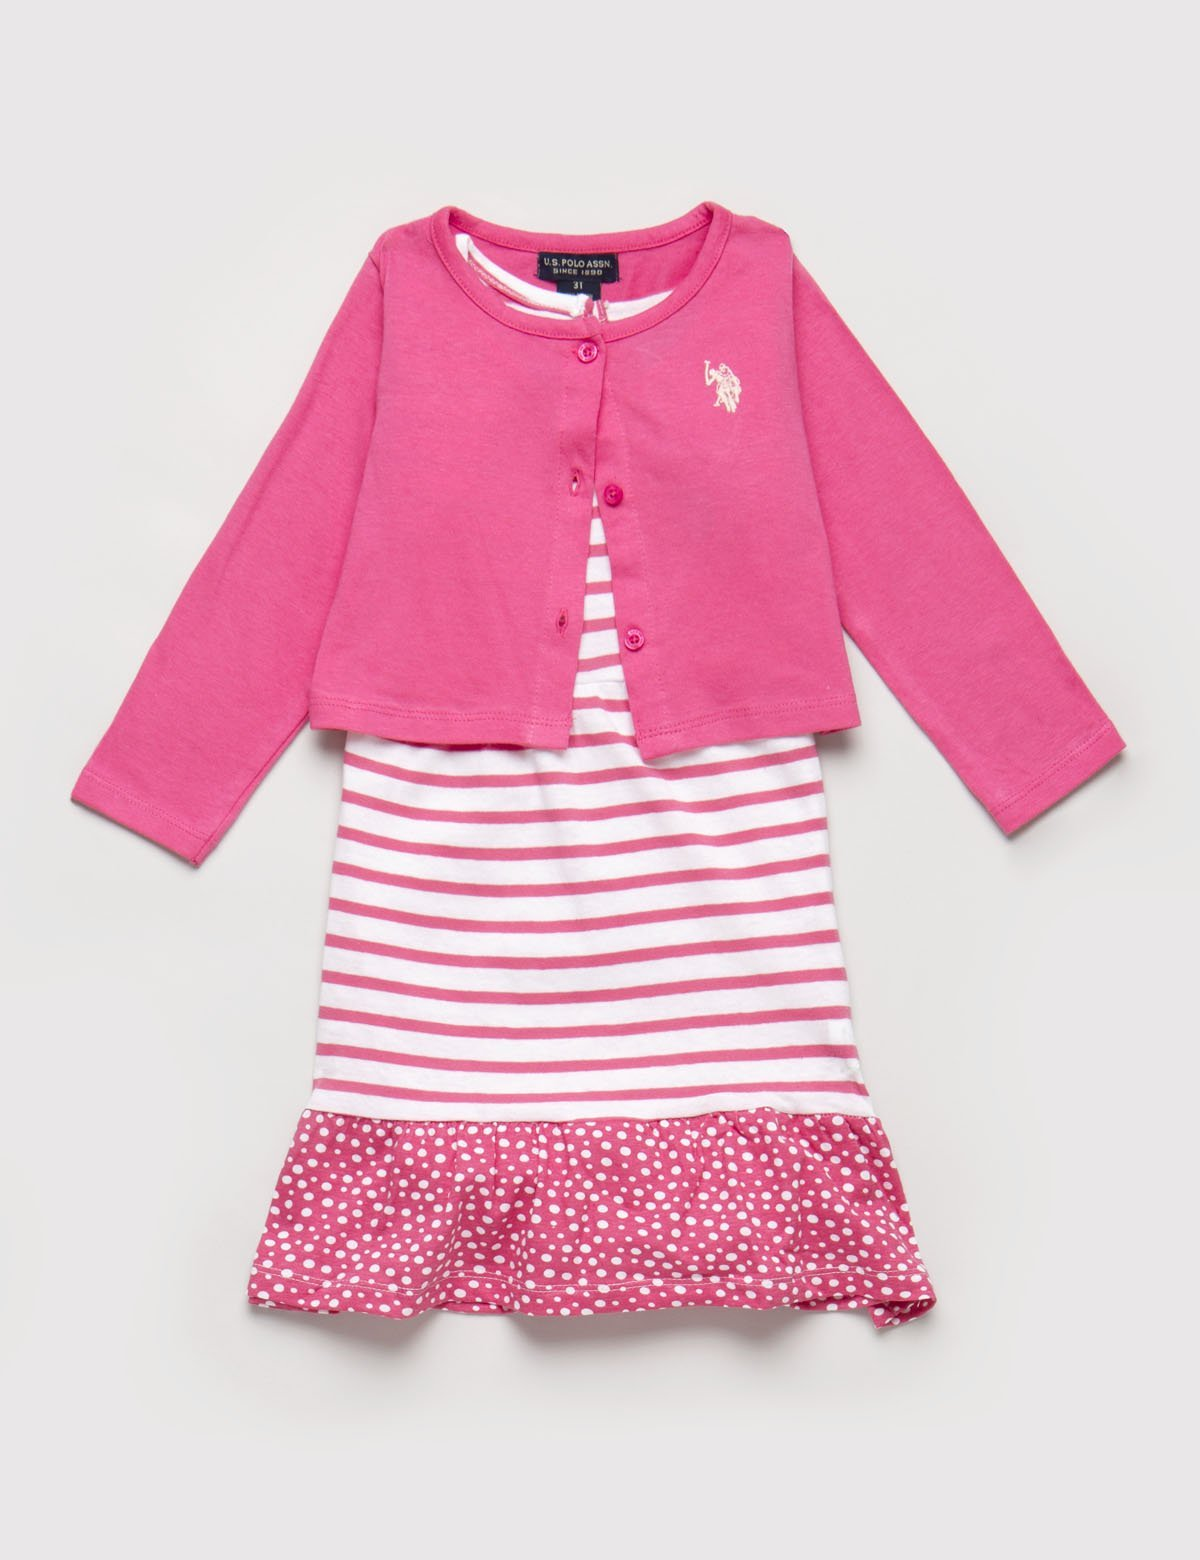 Toddler 2 Piece Set - Dress & Cardigan - U.S. Polo Assn.